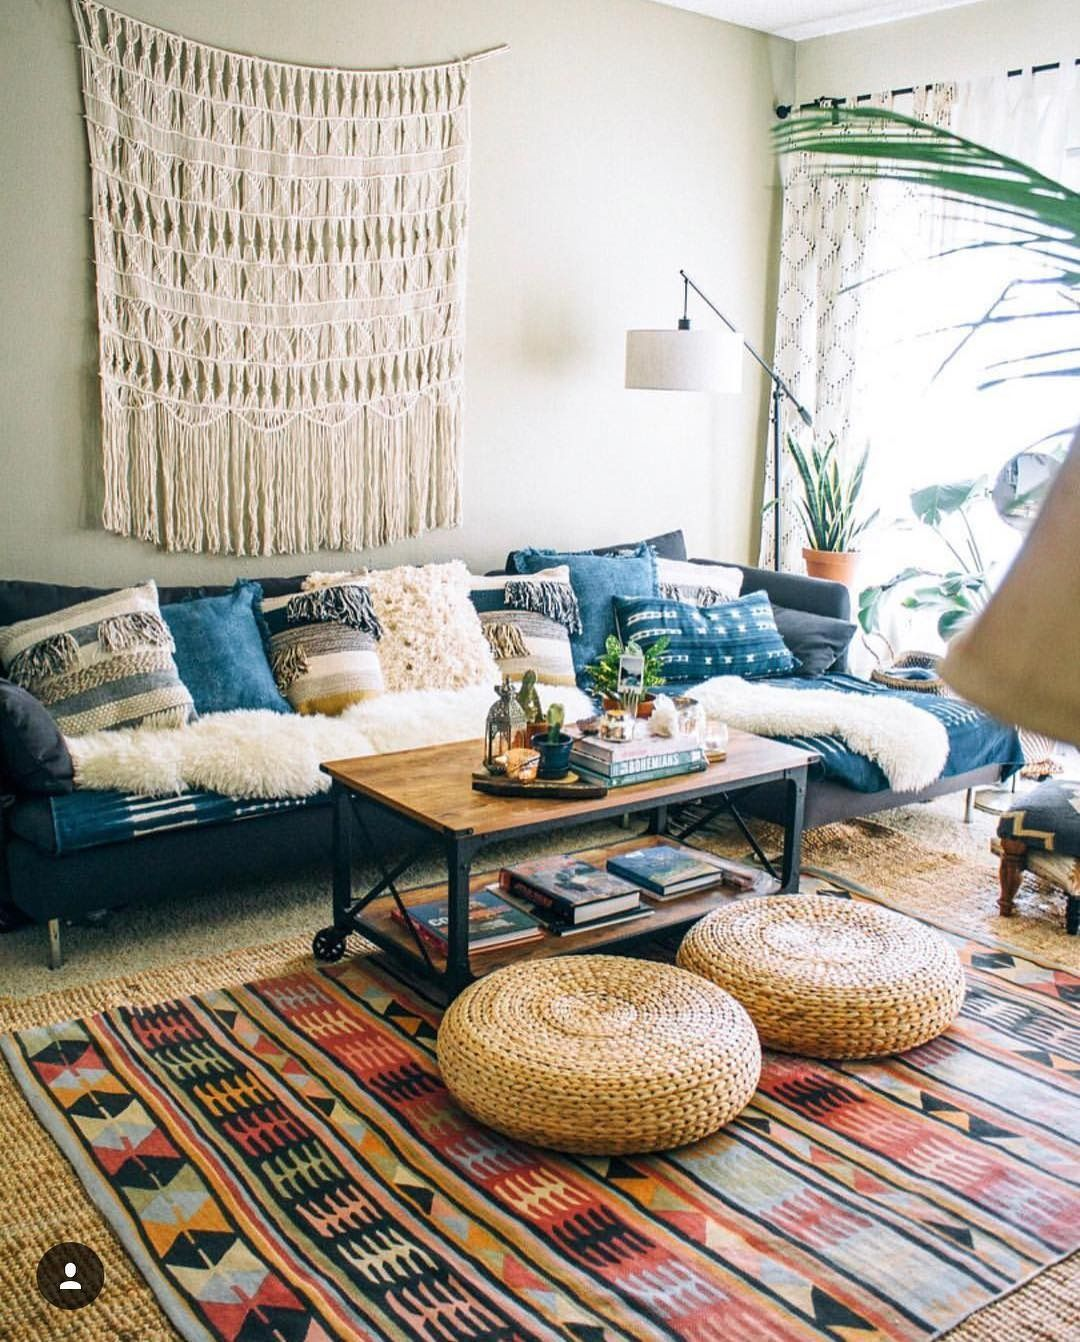 10 Boho Chic Kitchen Interior Design Ideas: 27 Chic Bohemian Interior Design You Will Want To Try